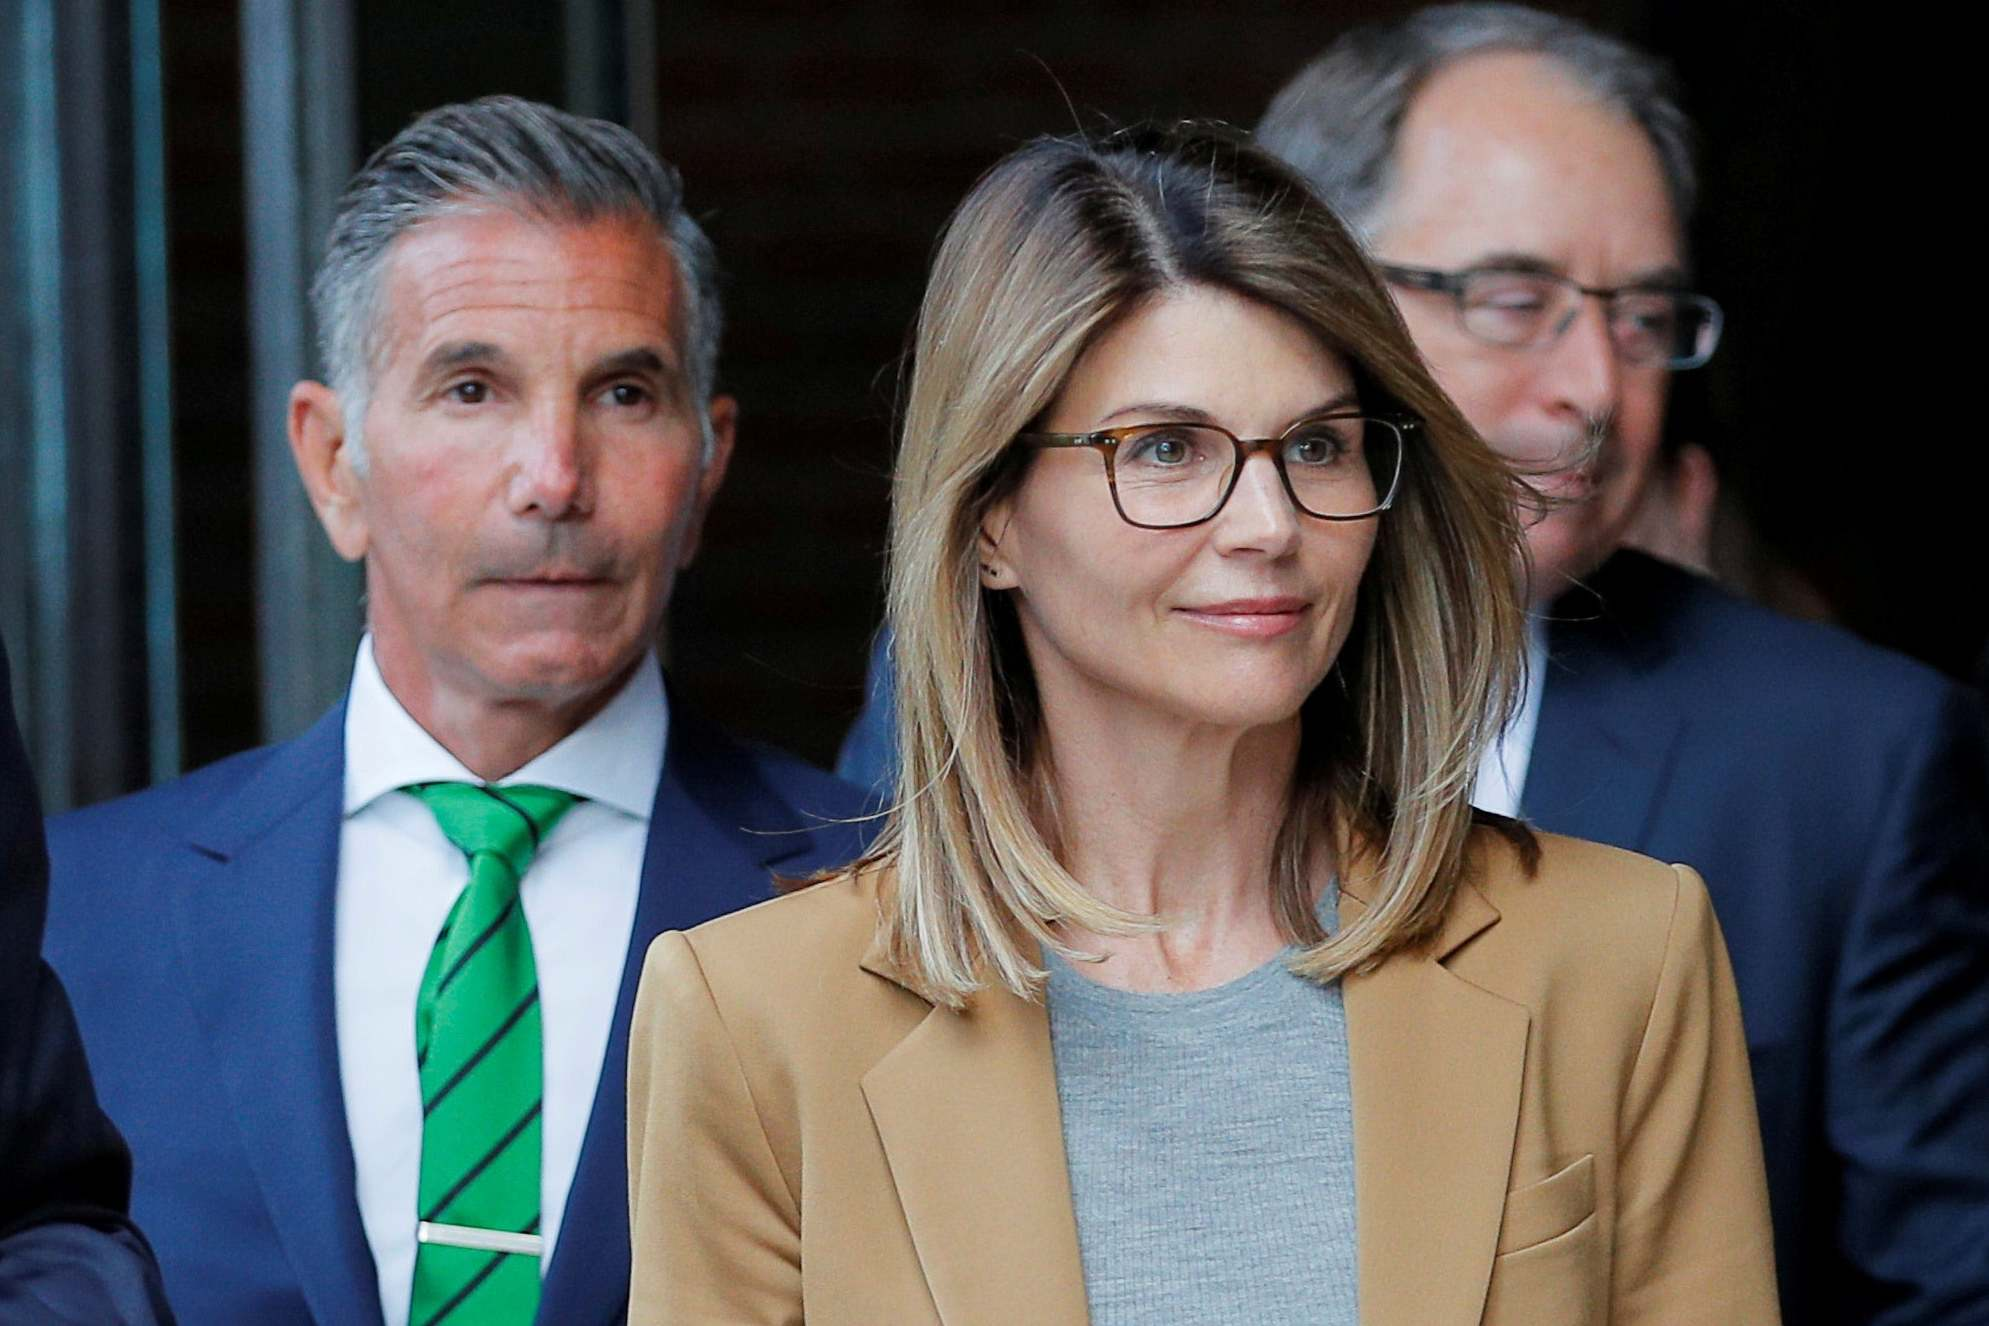 Lori Loughlin launched after serving prison timeframe for university bribes rip-off